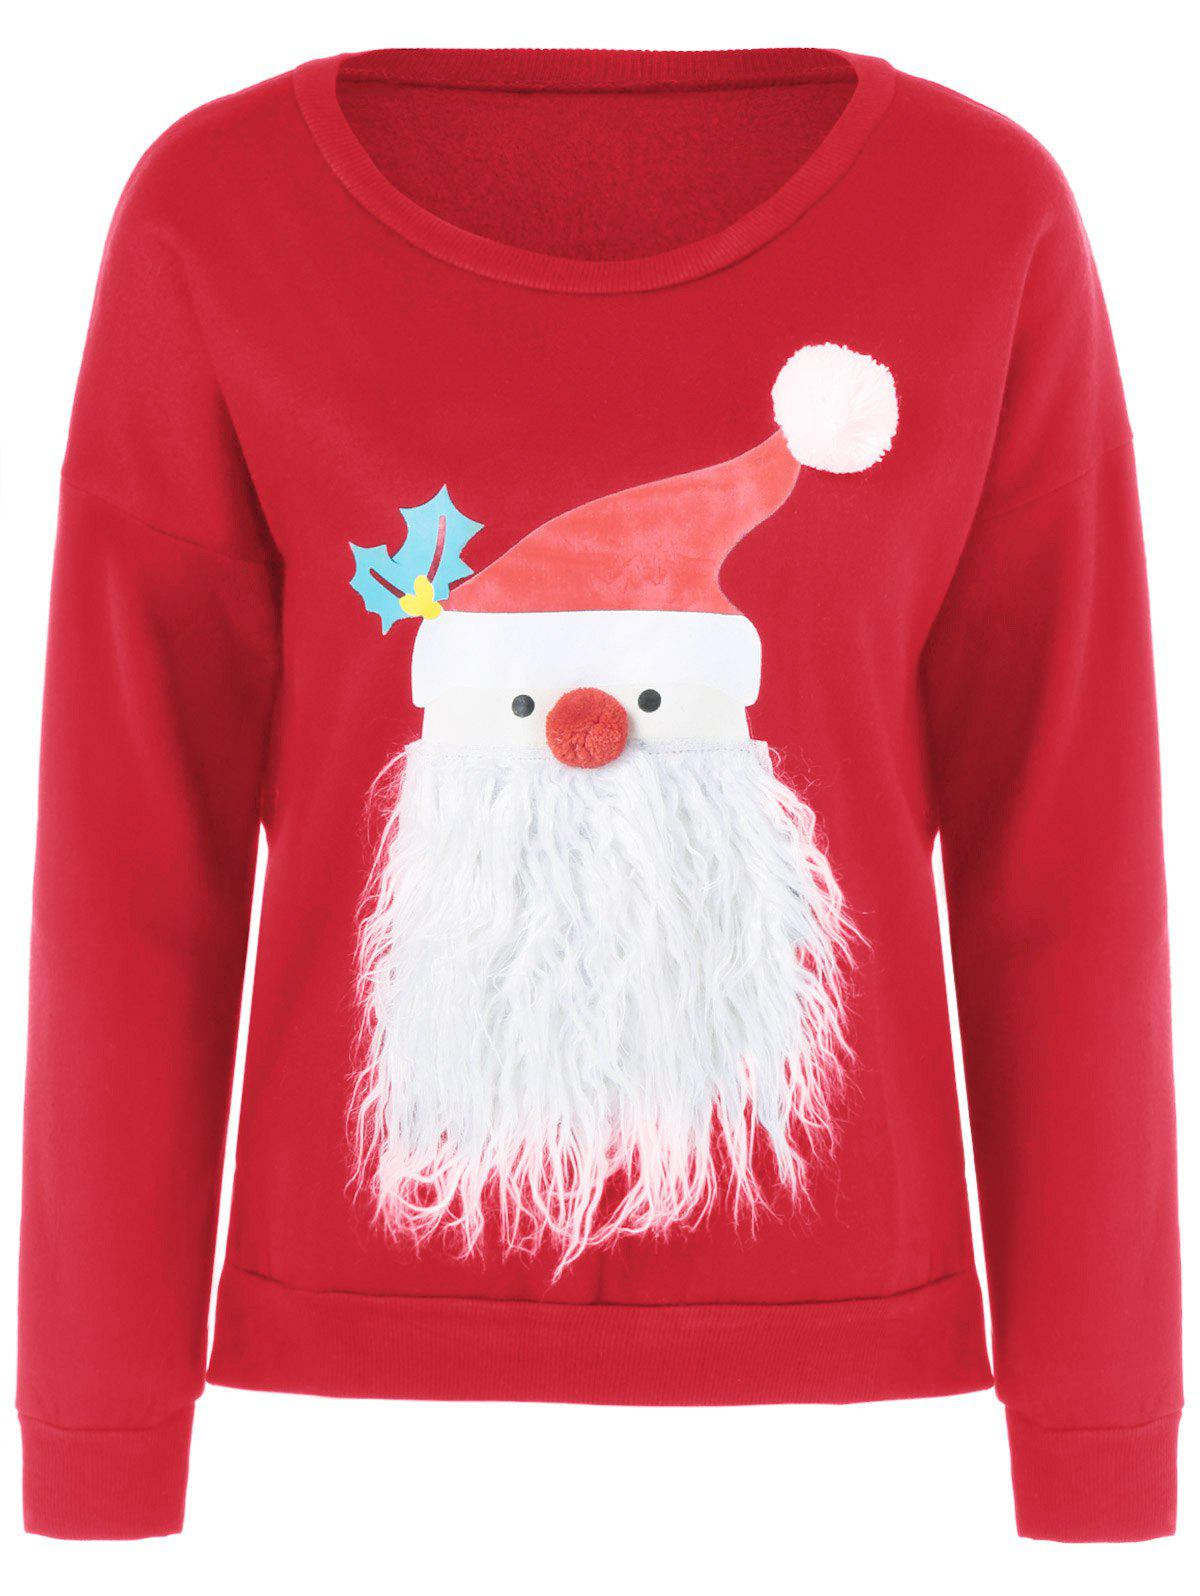 Christmas Fuzzy SweaterWOMEN<br><br>Size: L; Color: RED; Material: Polyester; Shirt Length: Regular; Sleeve Length: Full; Style: Casual; Pattern Style: Print; Season: Fall,Spring,Winter; Weight: 0.252kg; Package Contents: 1 x Sweatshirt;